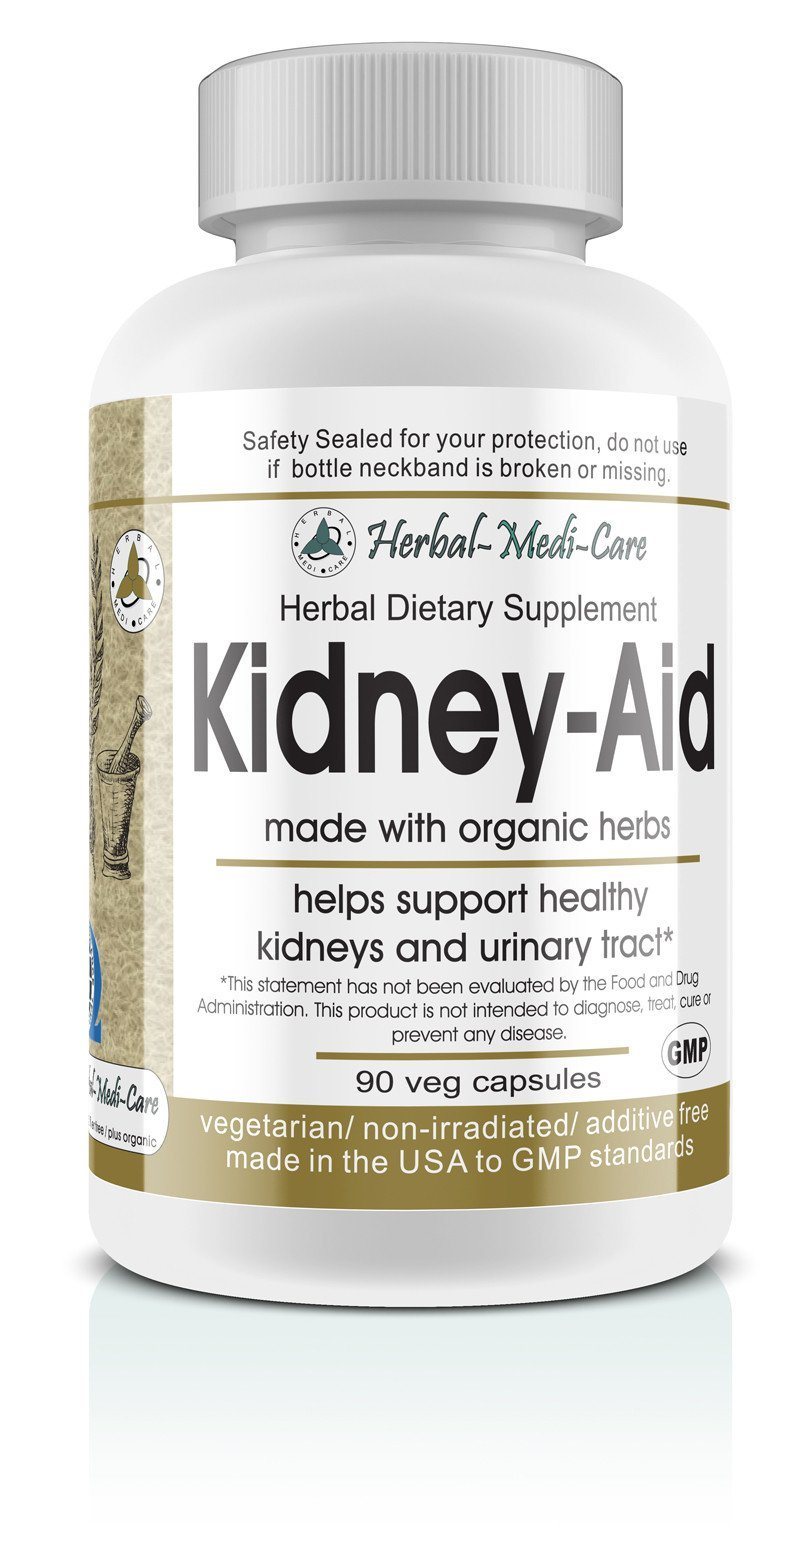 Herbal-Medi-Care Whole Food Kidney-Aid Vegetarian Capsules; 90-Count, Made with Organic - Herbal-Medi-Care Whole Food Kidney-Aid Vegetarian Capsules; 90-Count, Made with Organic - Herbal-Medi-Care Whole Food Kidney-Aid Vegetarian Capsules; 90-Count, Made with Organic